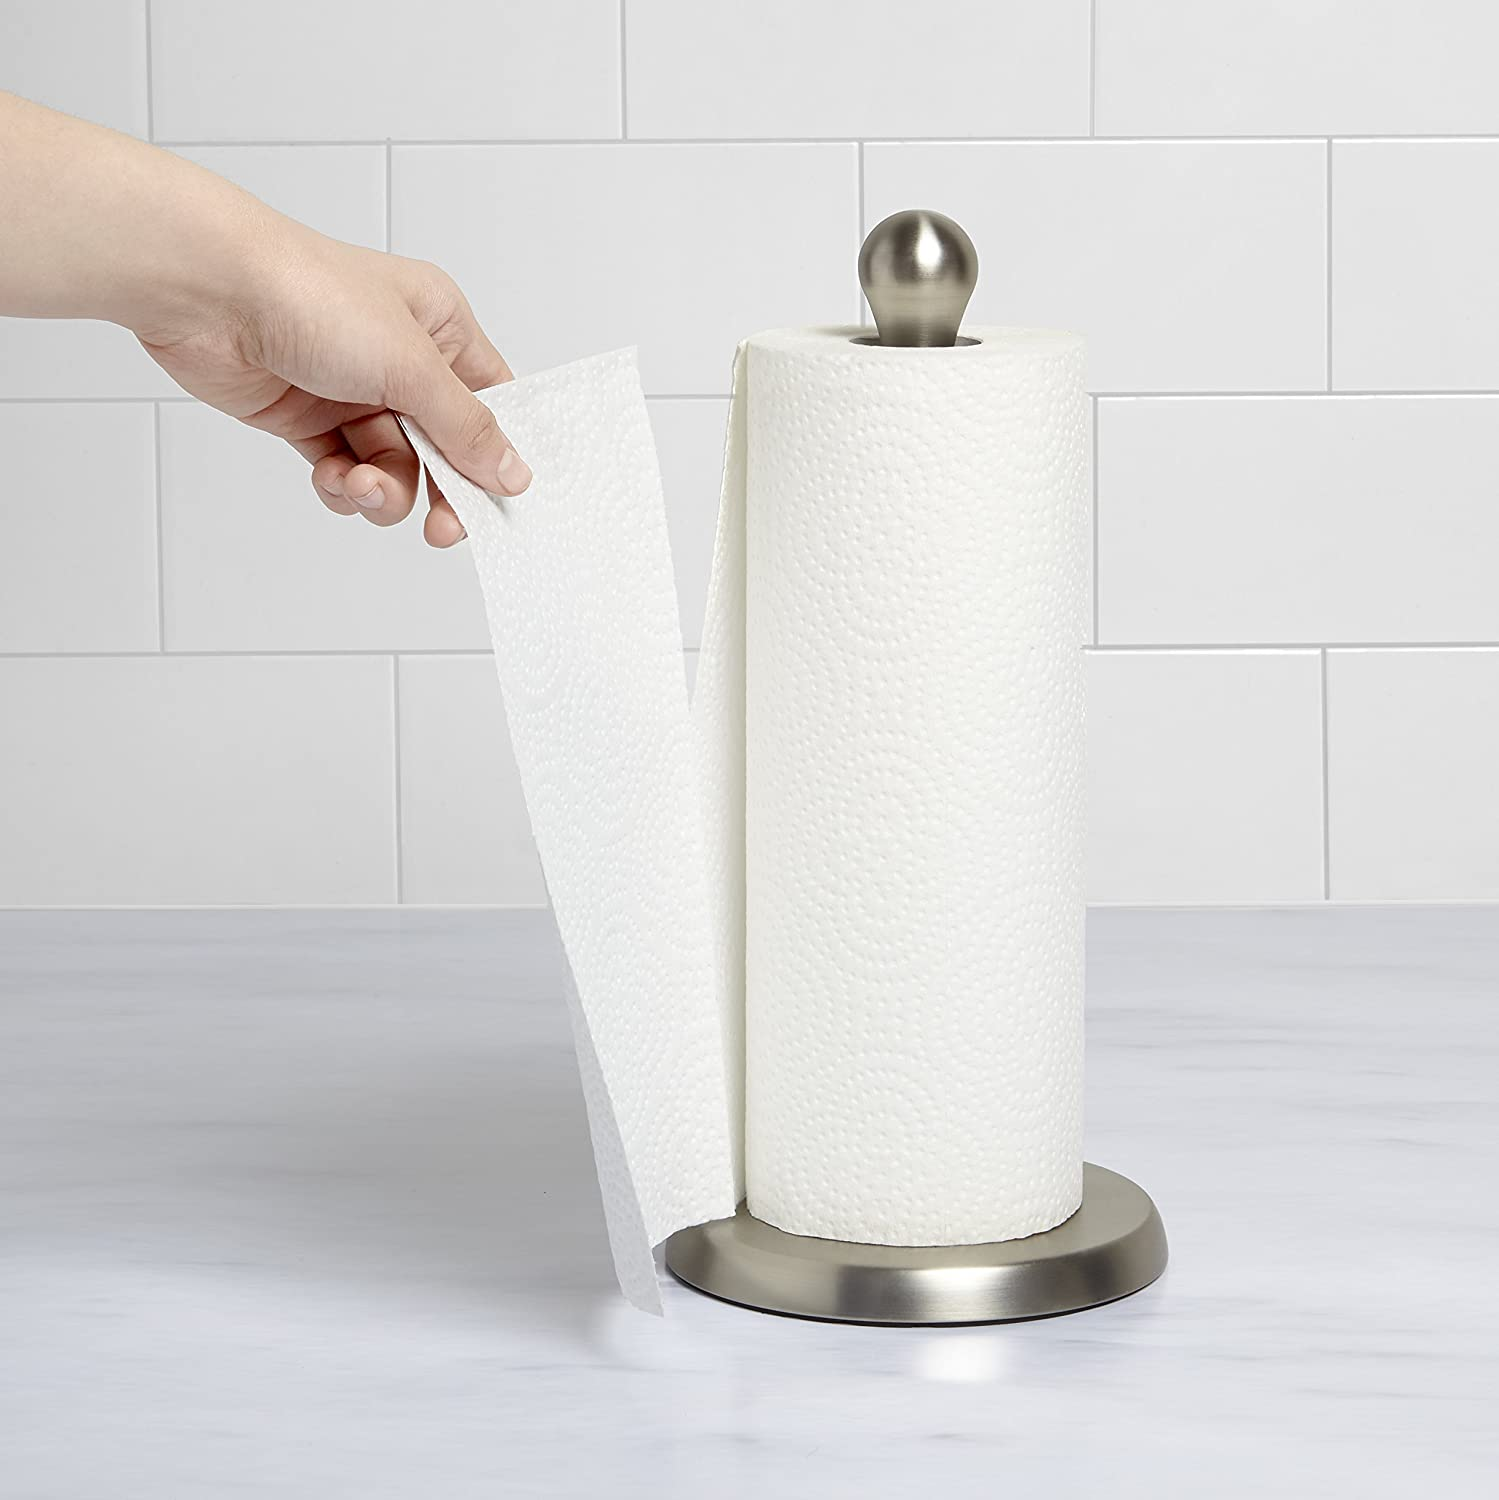 umbra tug modern stand up paper towel holder easy